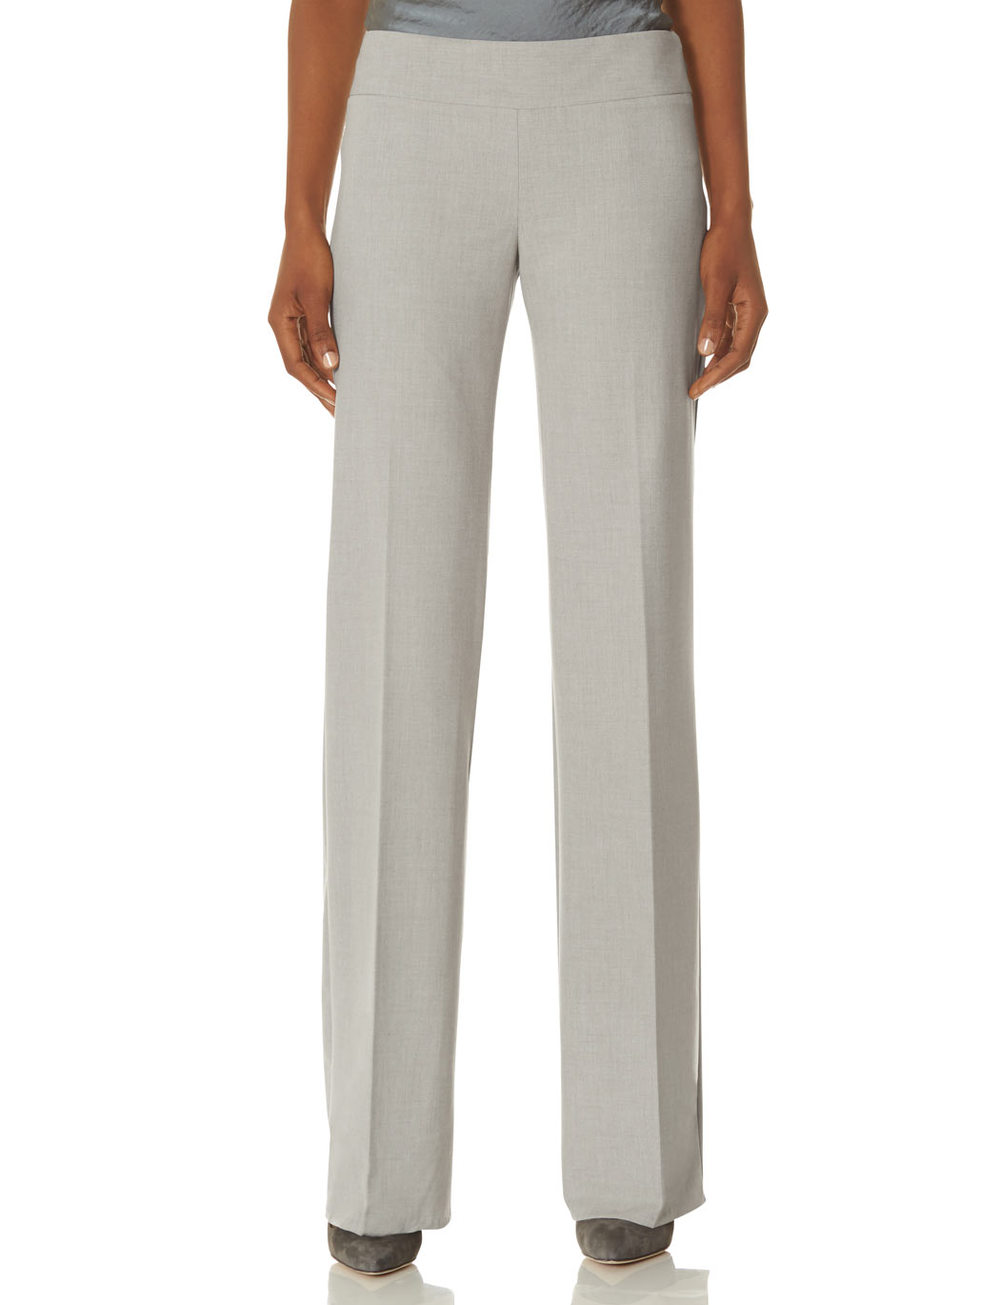 Oliva wide leg trouser pants. Obsessed.